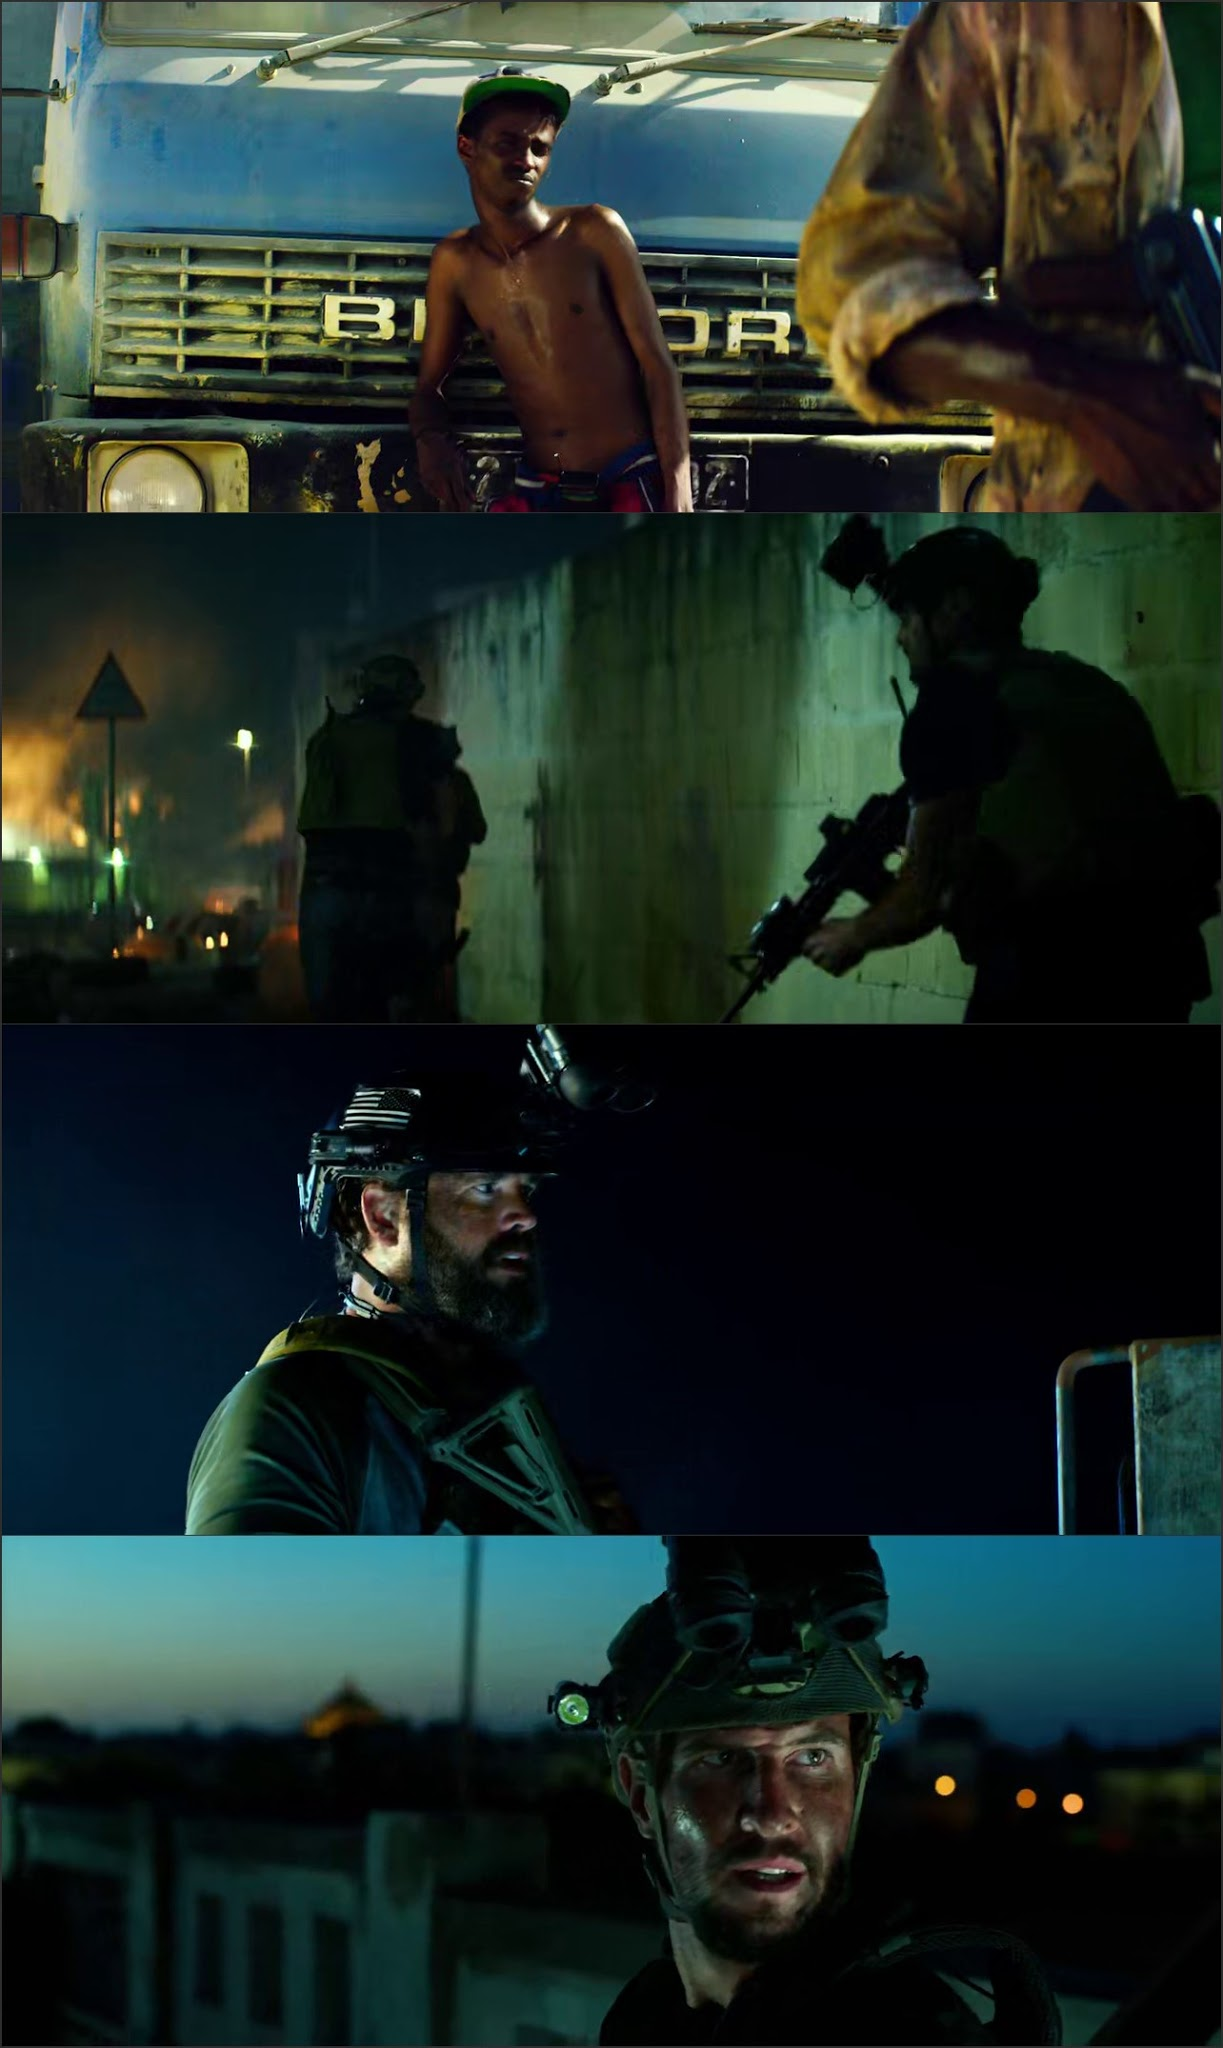 13 hours the secret soldiers of benghazi full movie online